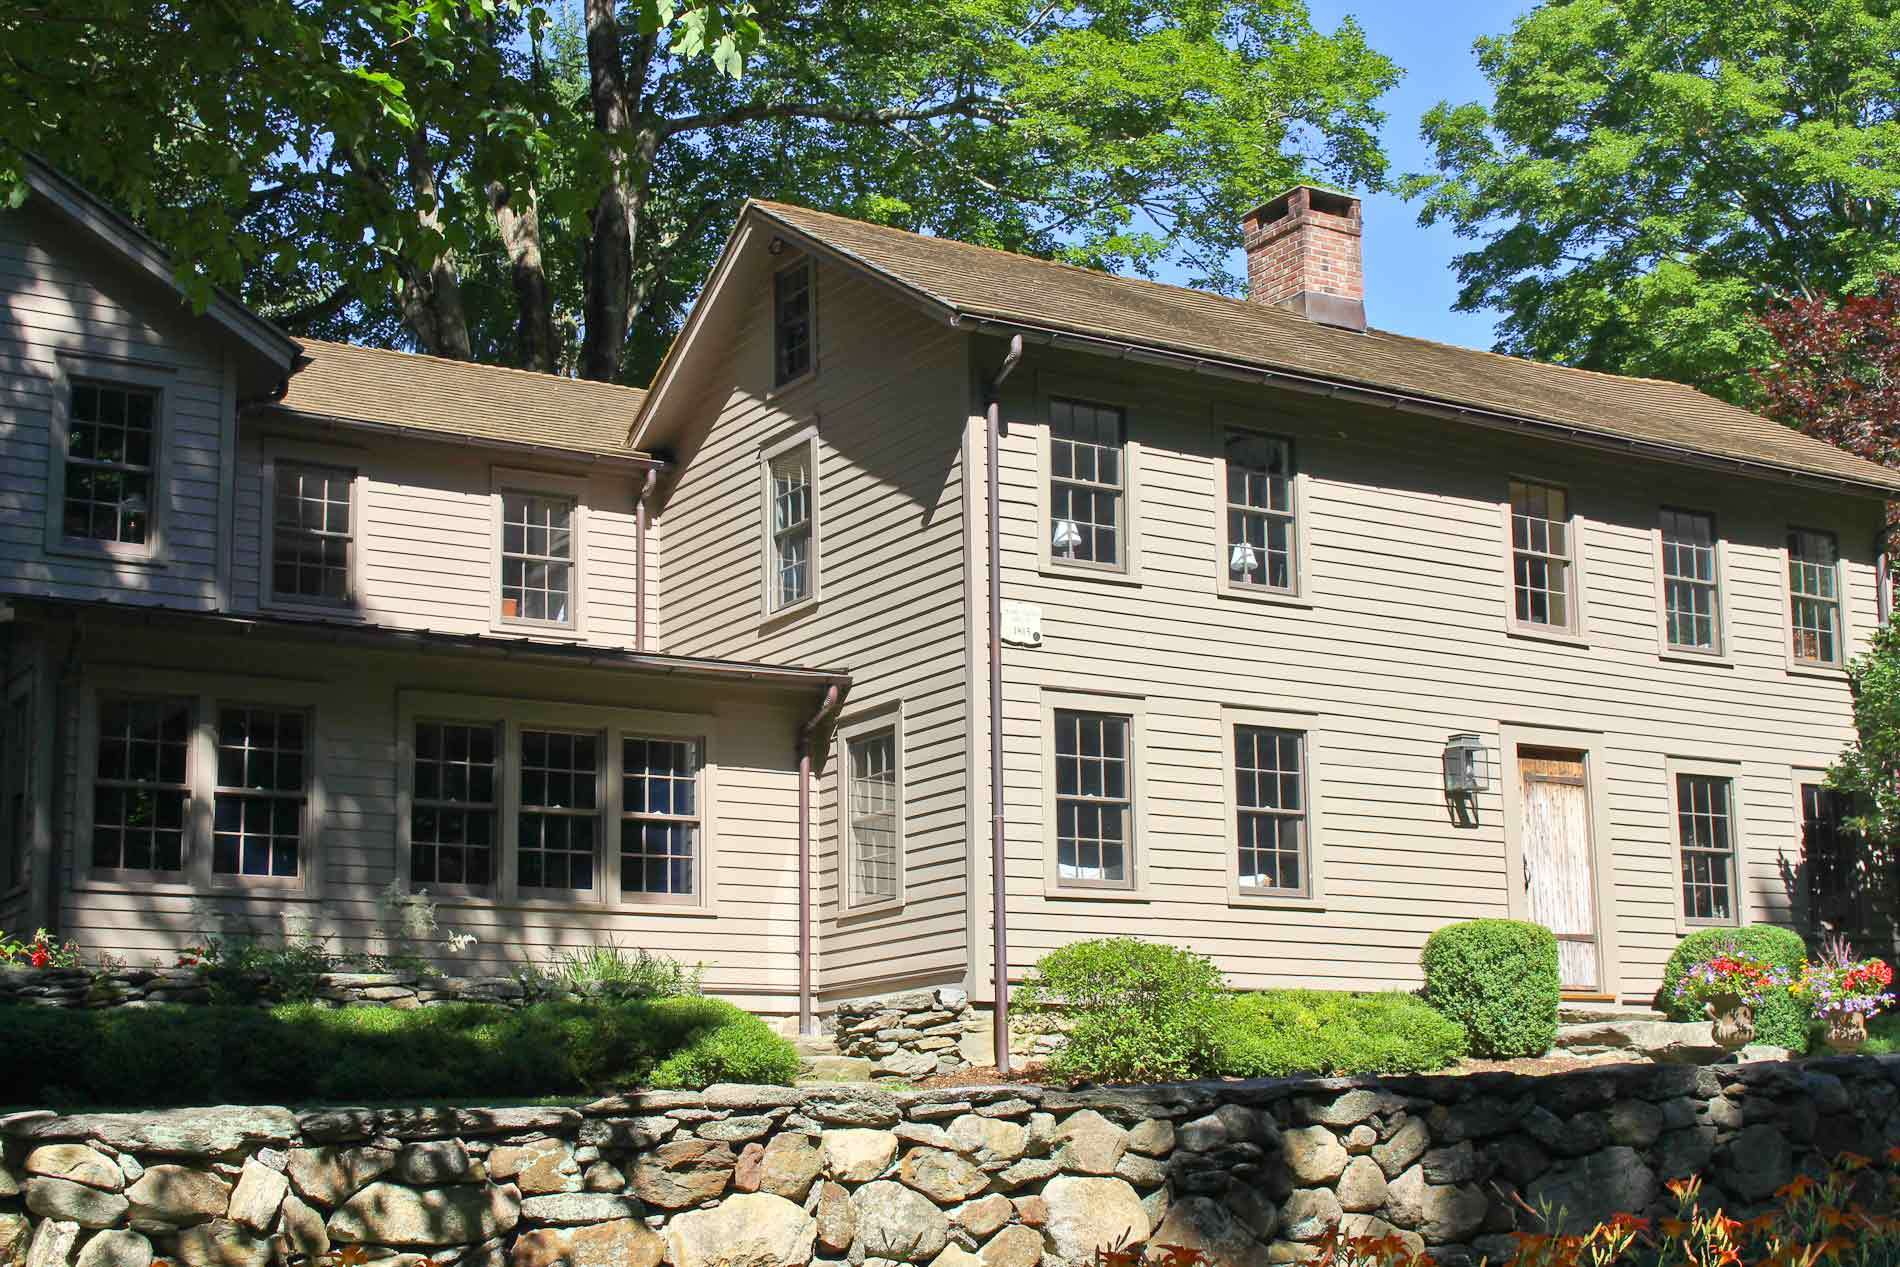 Antique Homes for Sale in Weston CT: Find and Buy Old Historic